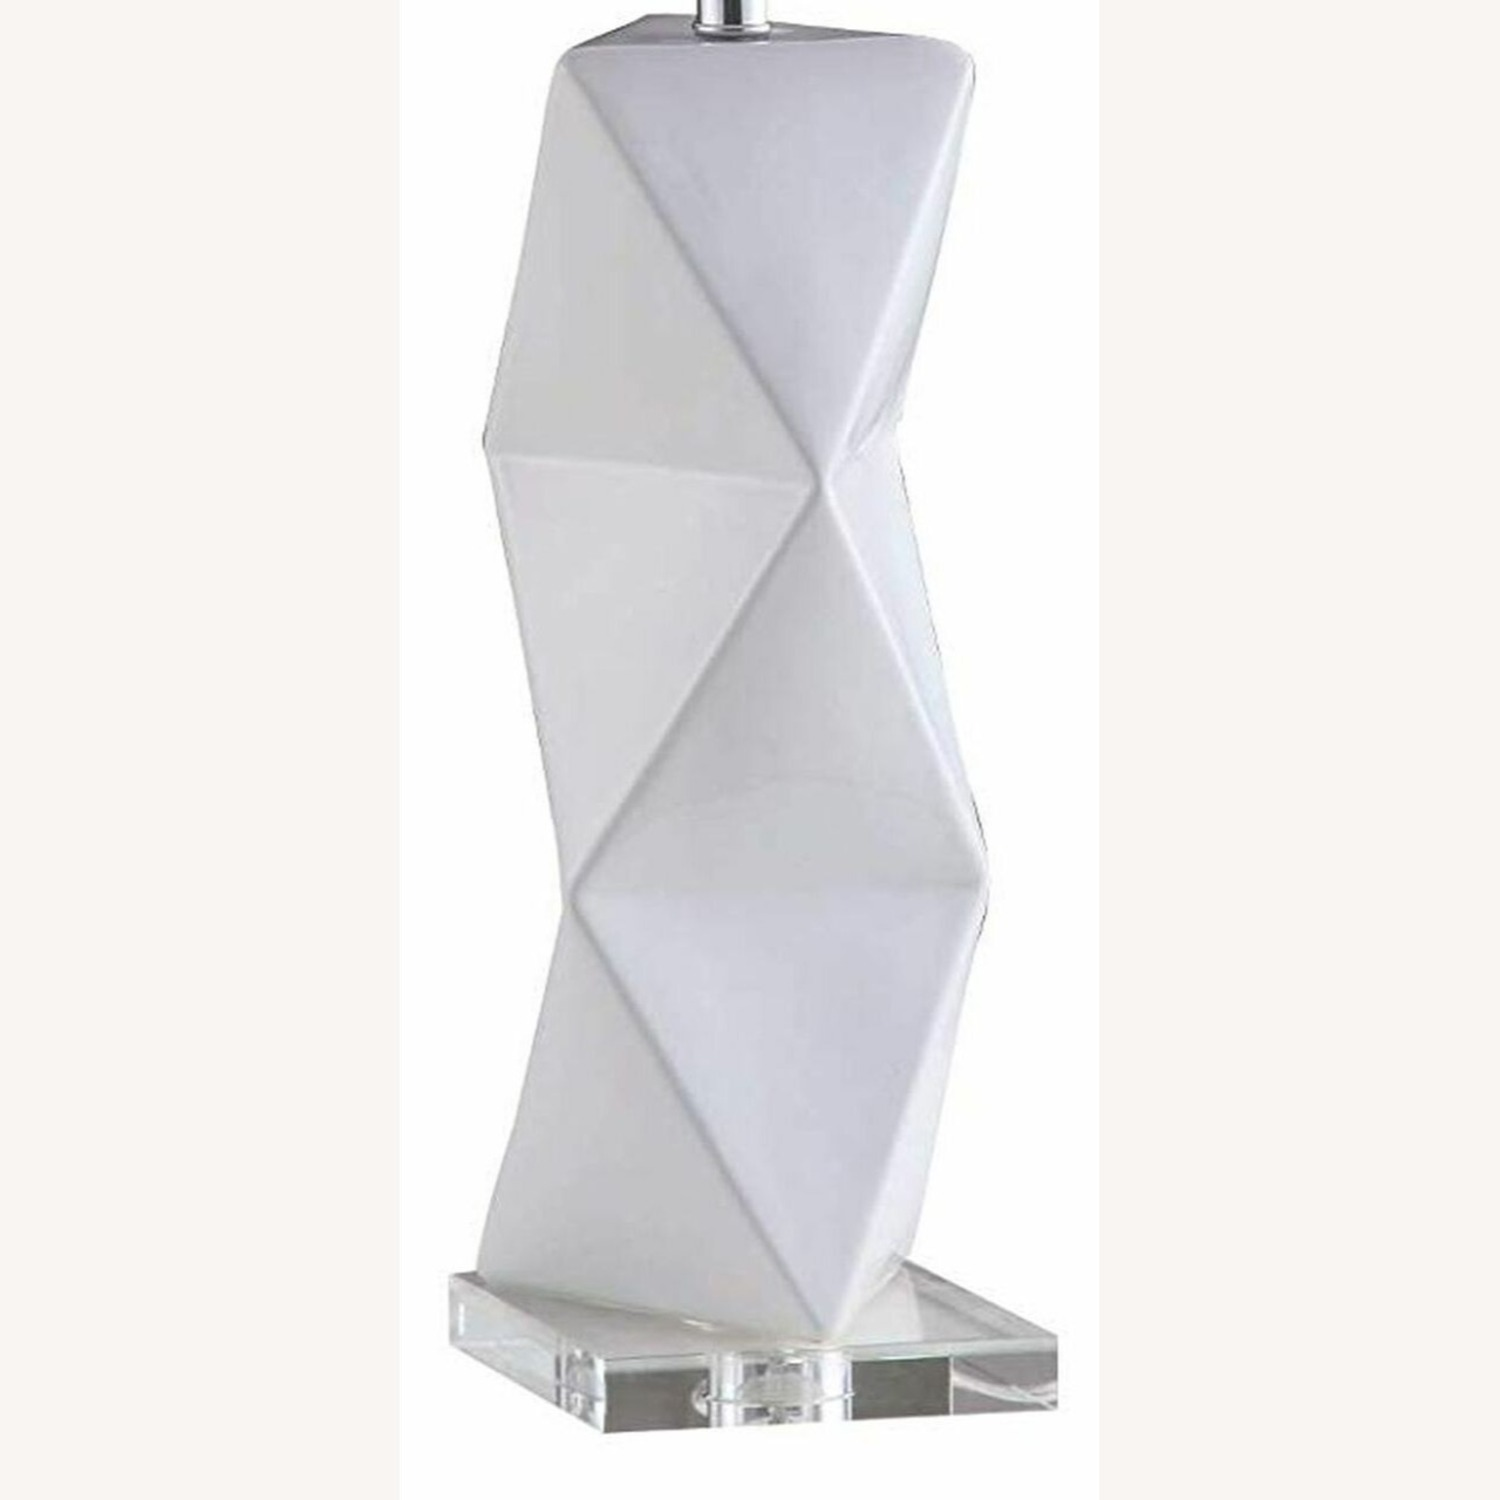 Table Lamp In White Ceramic Base Finish - image-1